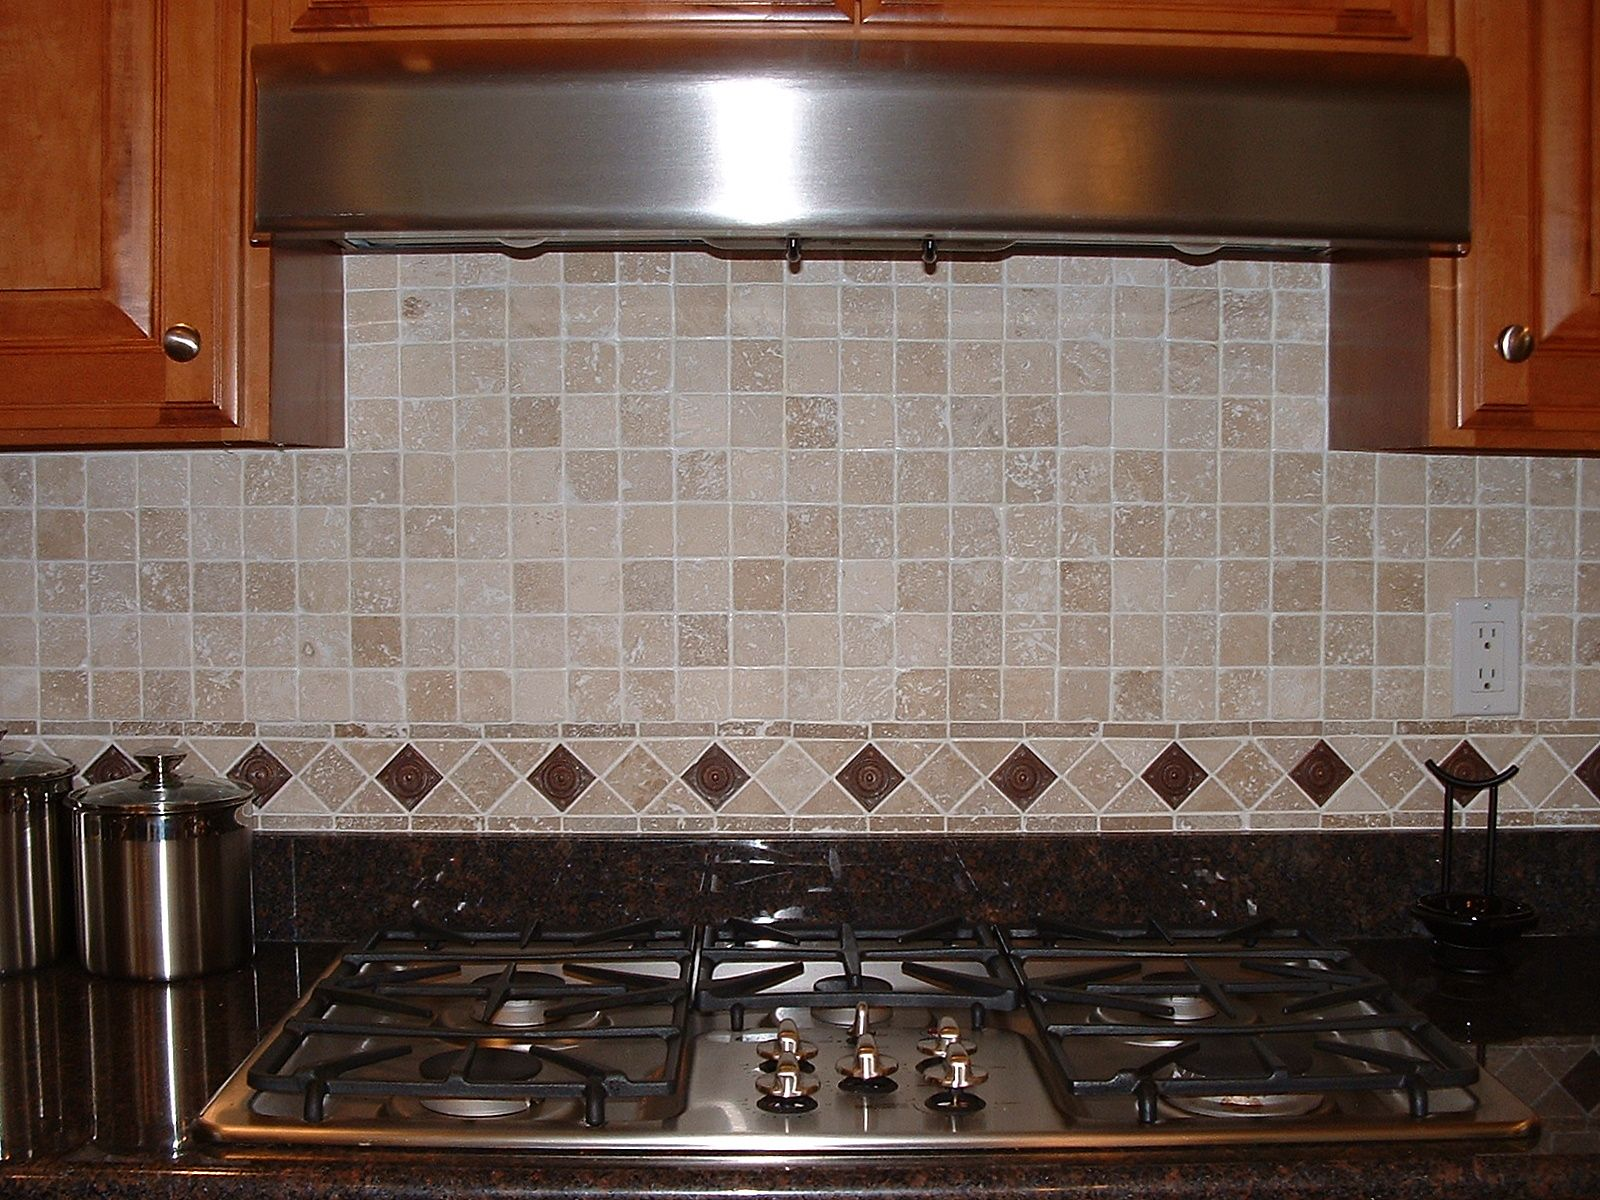 Backsplash designs kitchen classic subway tile Inexpensive kitchen backsplash